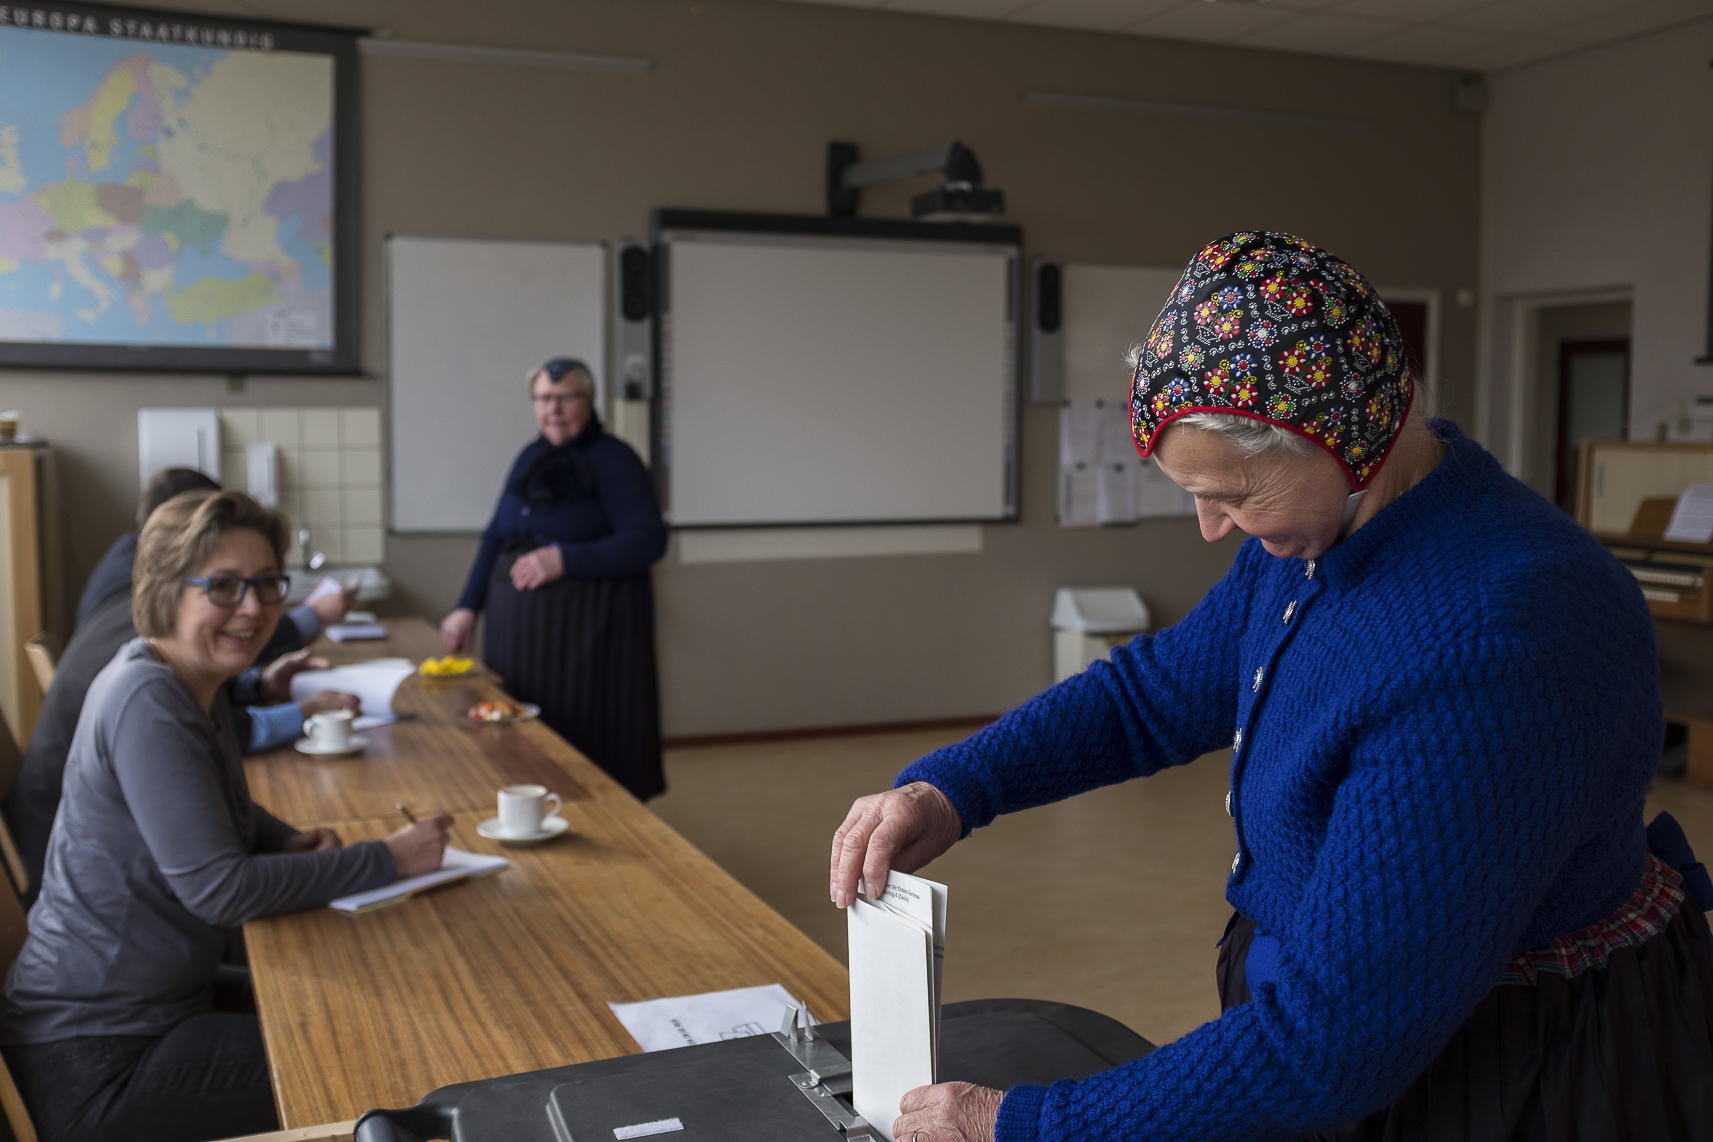 An elderly woman dressed in the traditional clothing of the town casts her ballot for the Dutch general elections at a polling station set up in a school in Staphorst, Netherlands, Wednesday, March 15, 2017.